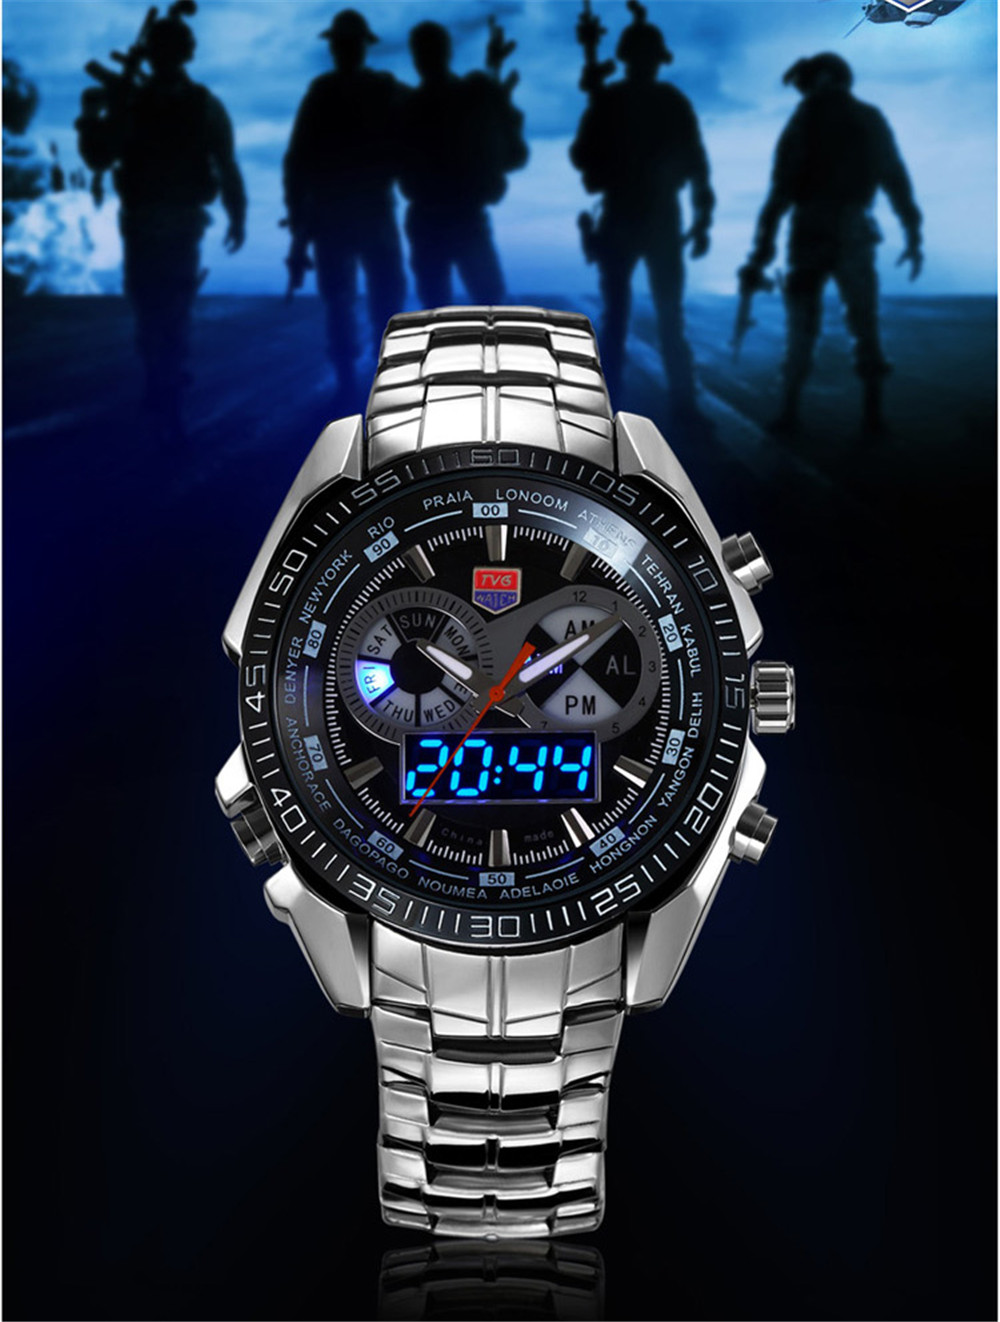 TVG KM-468 3747 Fashionable Leisure Trend Outdoor Sports Night Light Display Steel with Cool Electronic Quartz Watch